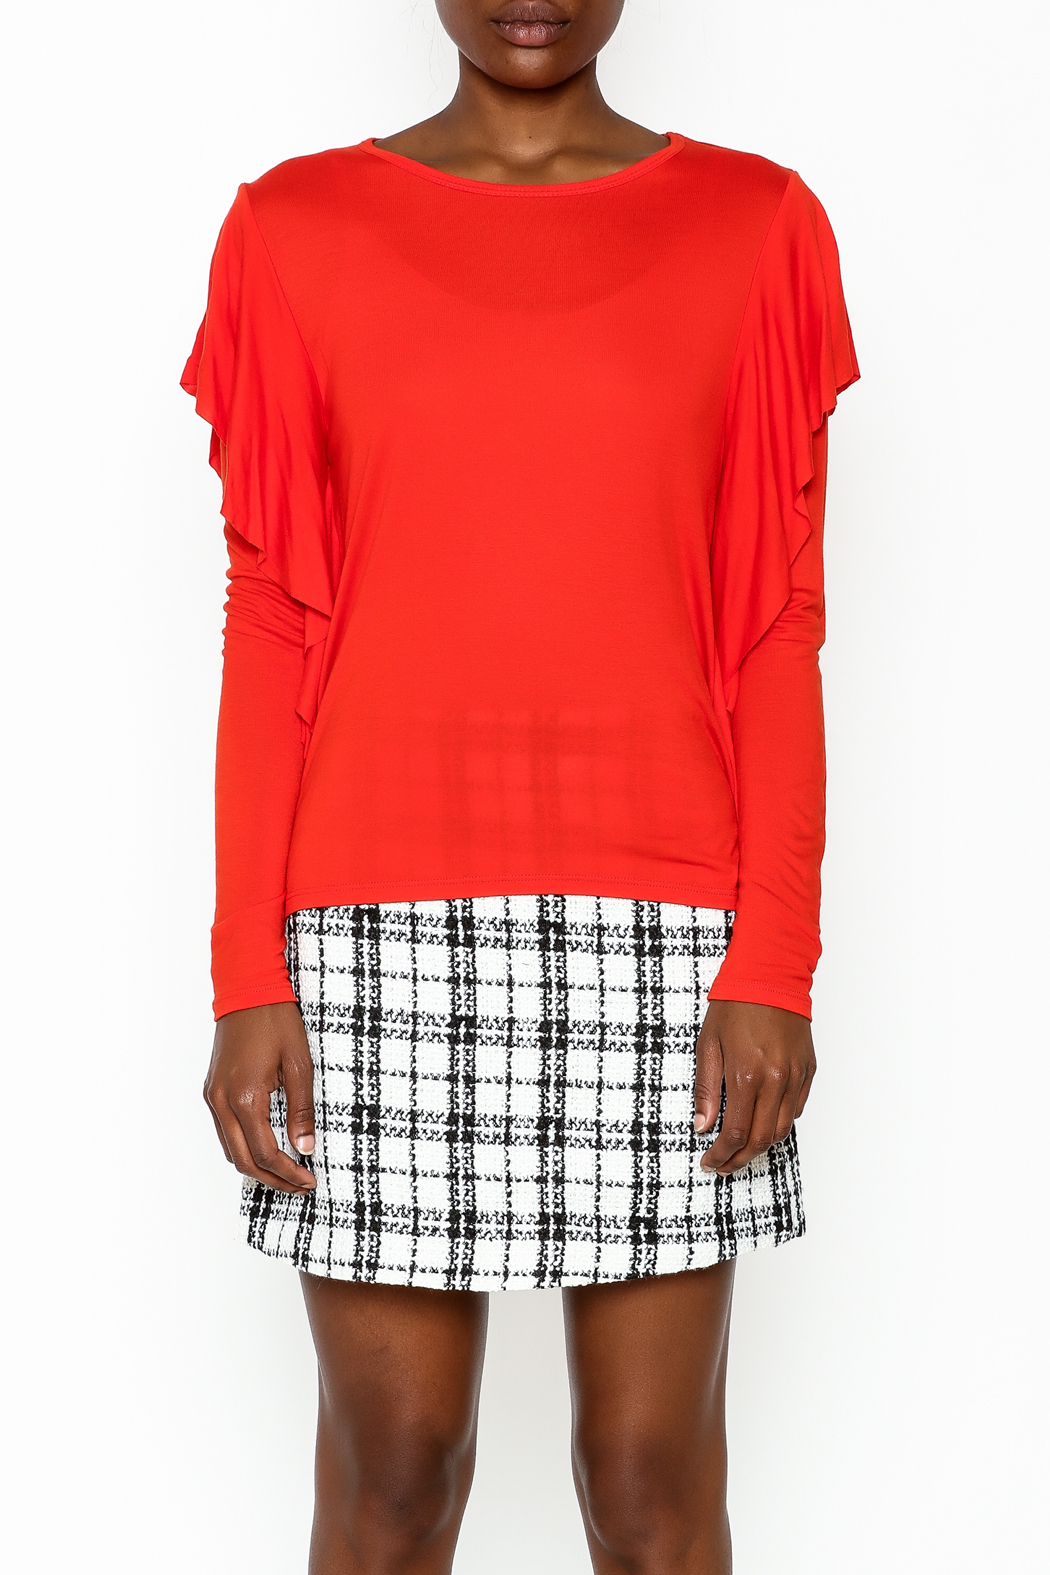 Amite Orange Frill Top - Front Full Image